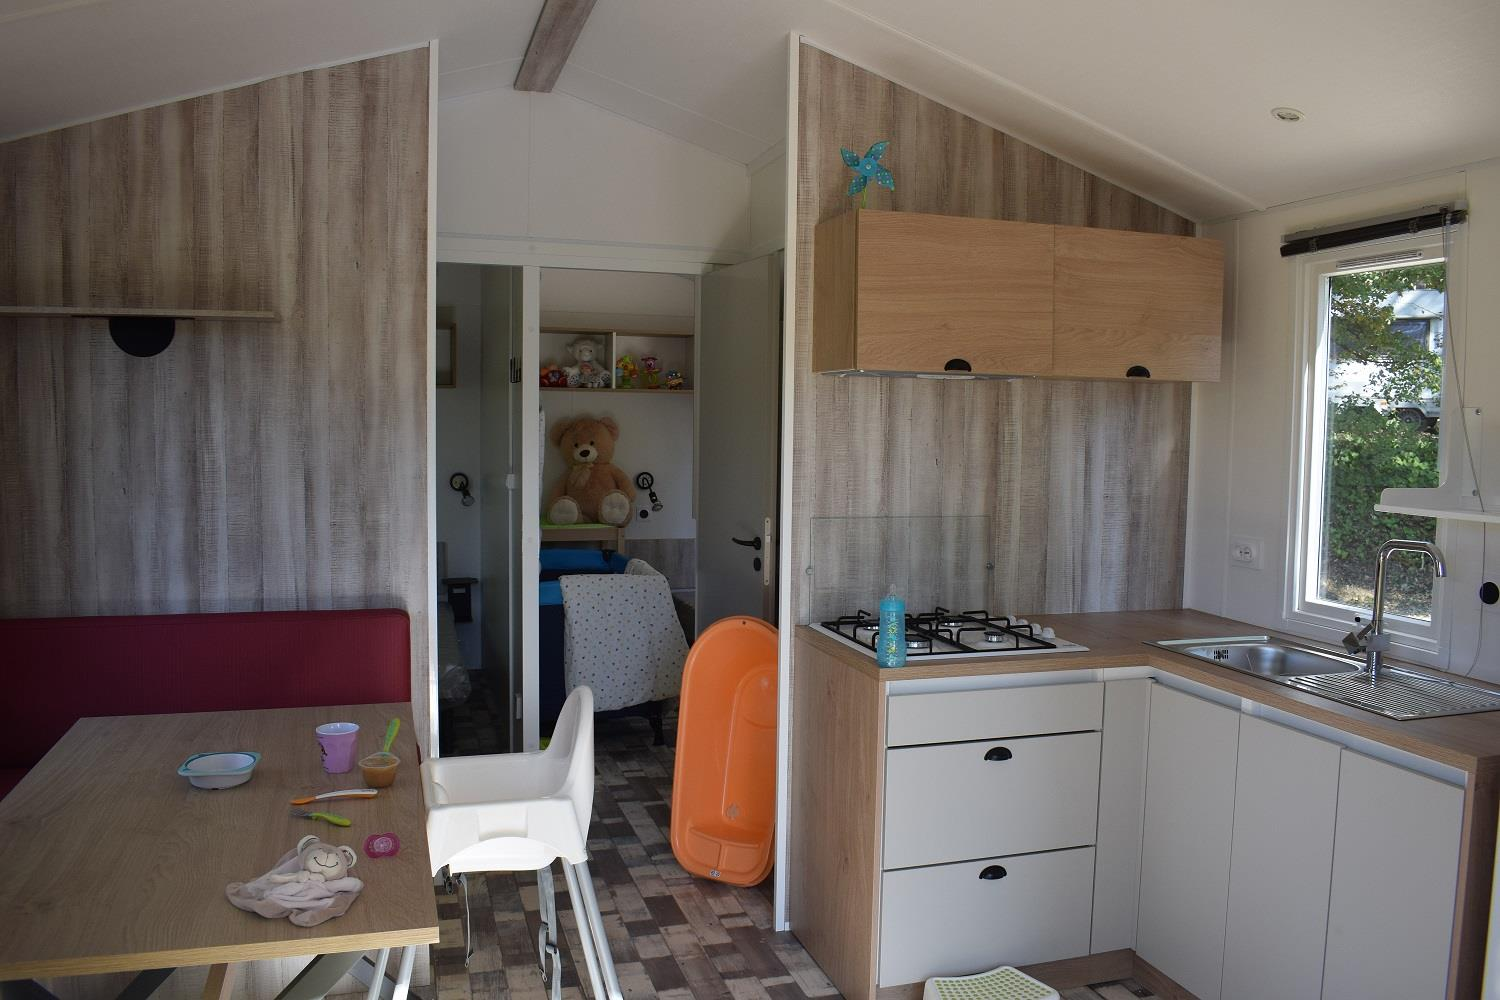 Mobil Home 2 Rooms 24M² Baby Special, Air-Conditioning, Covered Terrace